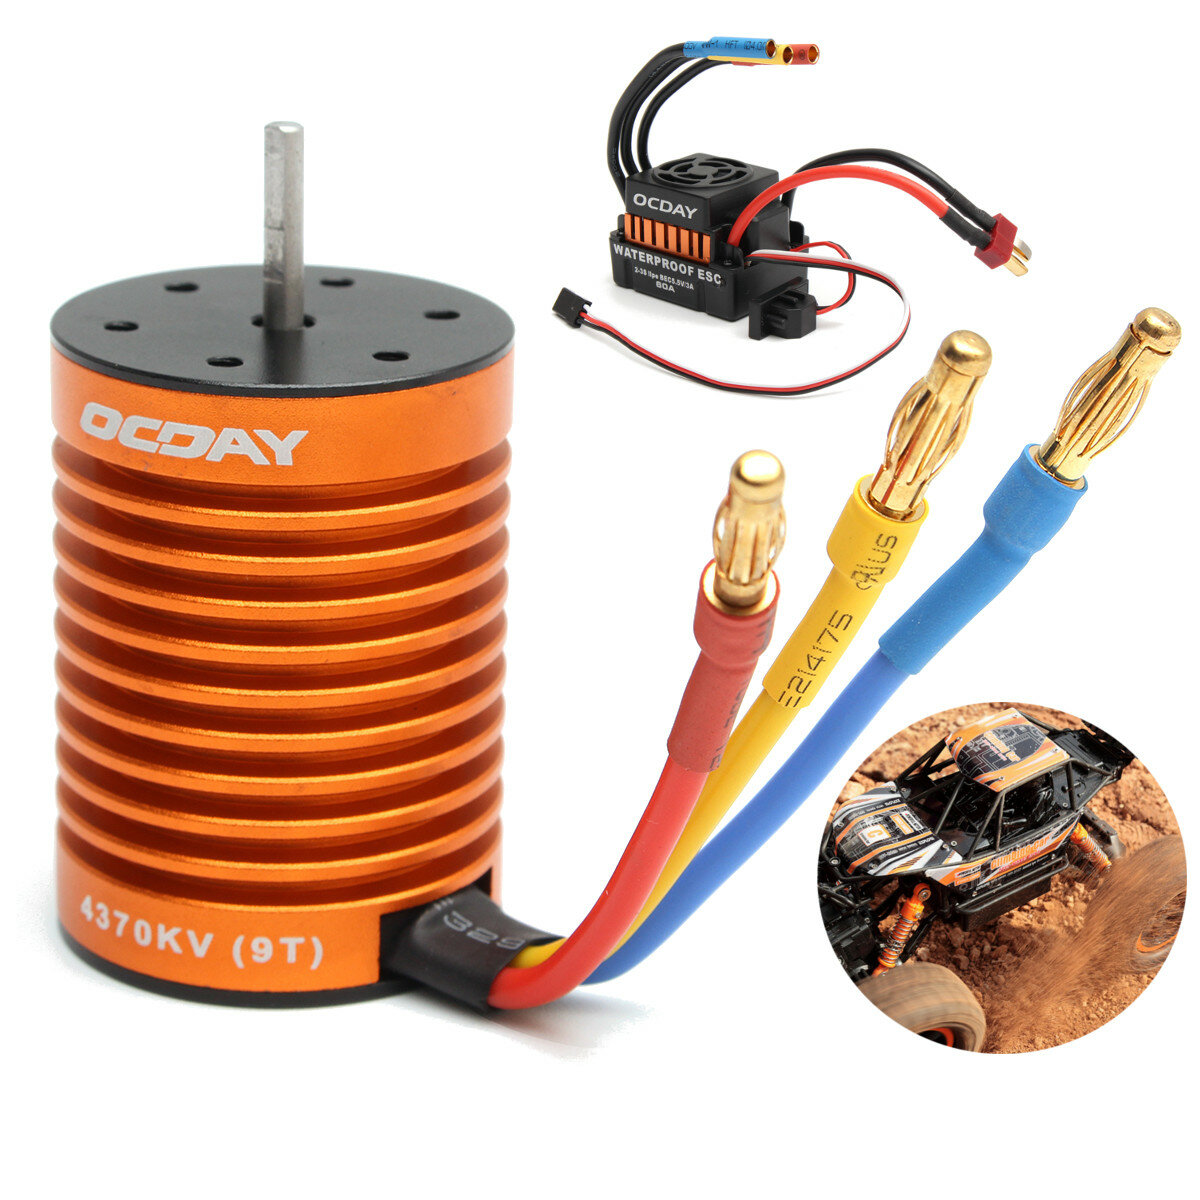 0705ed20 87ac 4b71 b0a6 a607e328f5fc 9t 4370kv brushless motor 60a esc speed controller combo set for 1